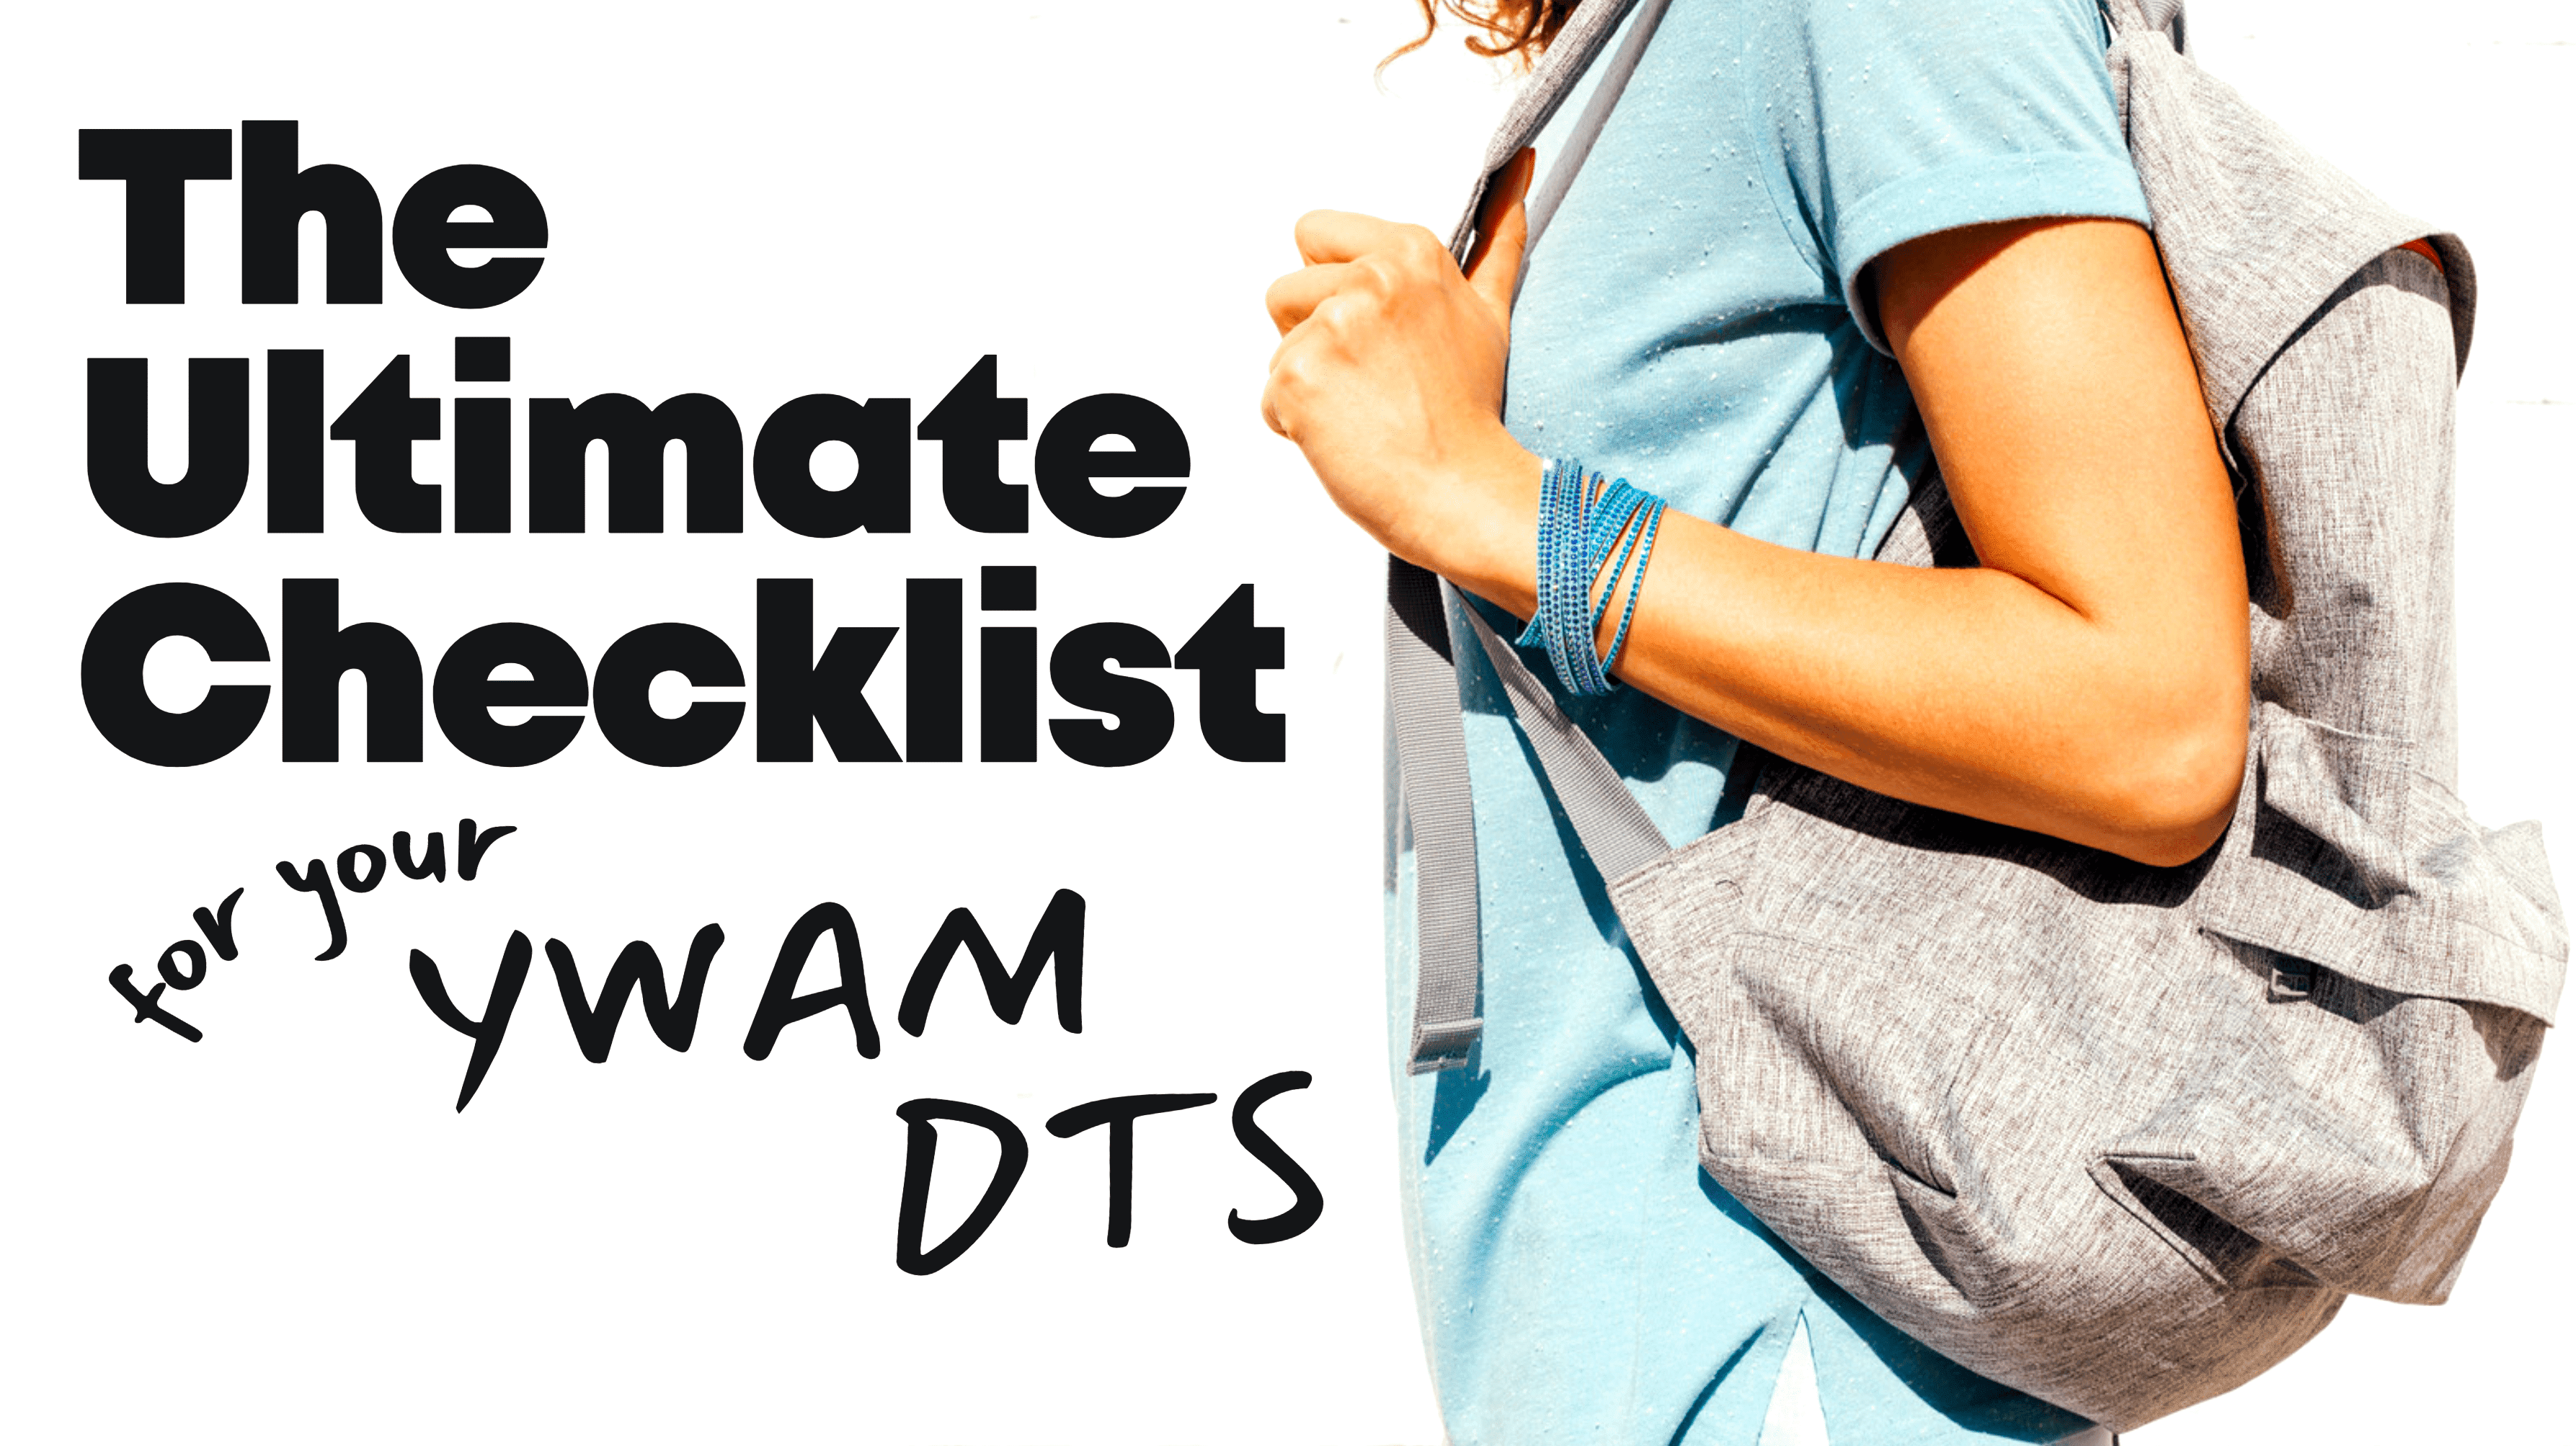 The Ultimate Checklist for your YWAM DTS